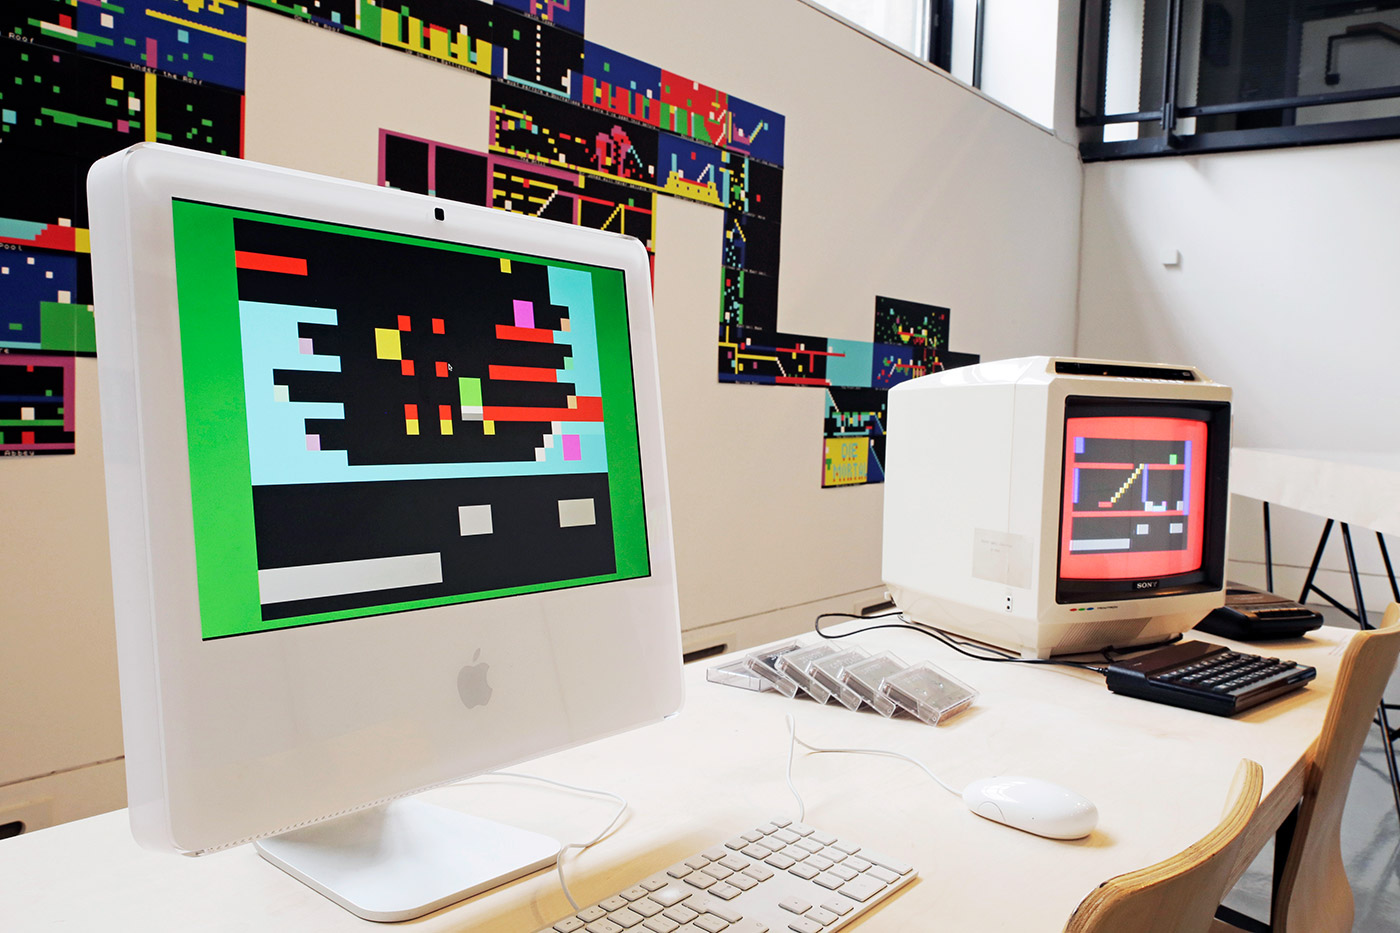 A photo of two computer screens showing artwork by JODI